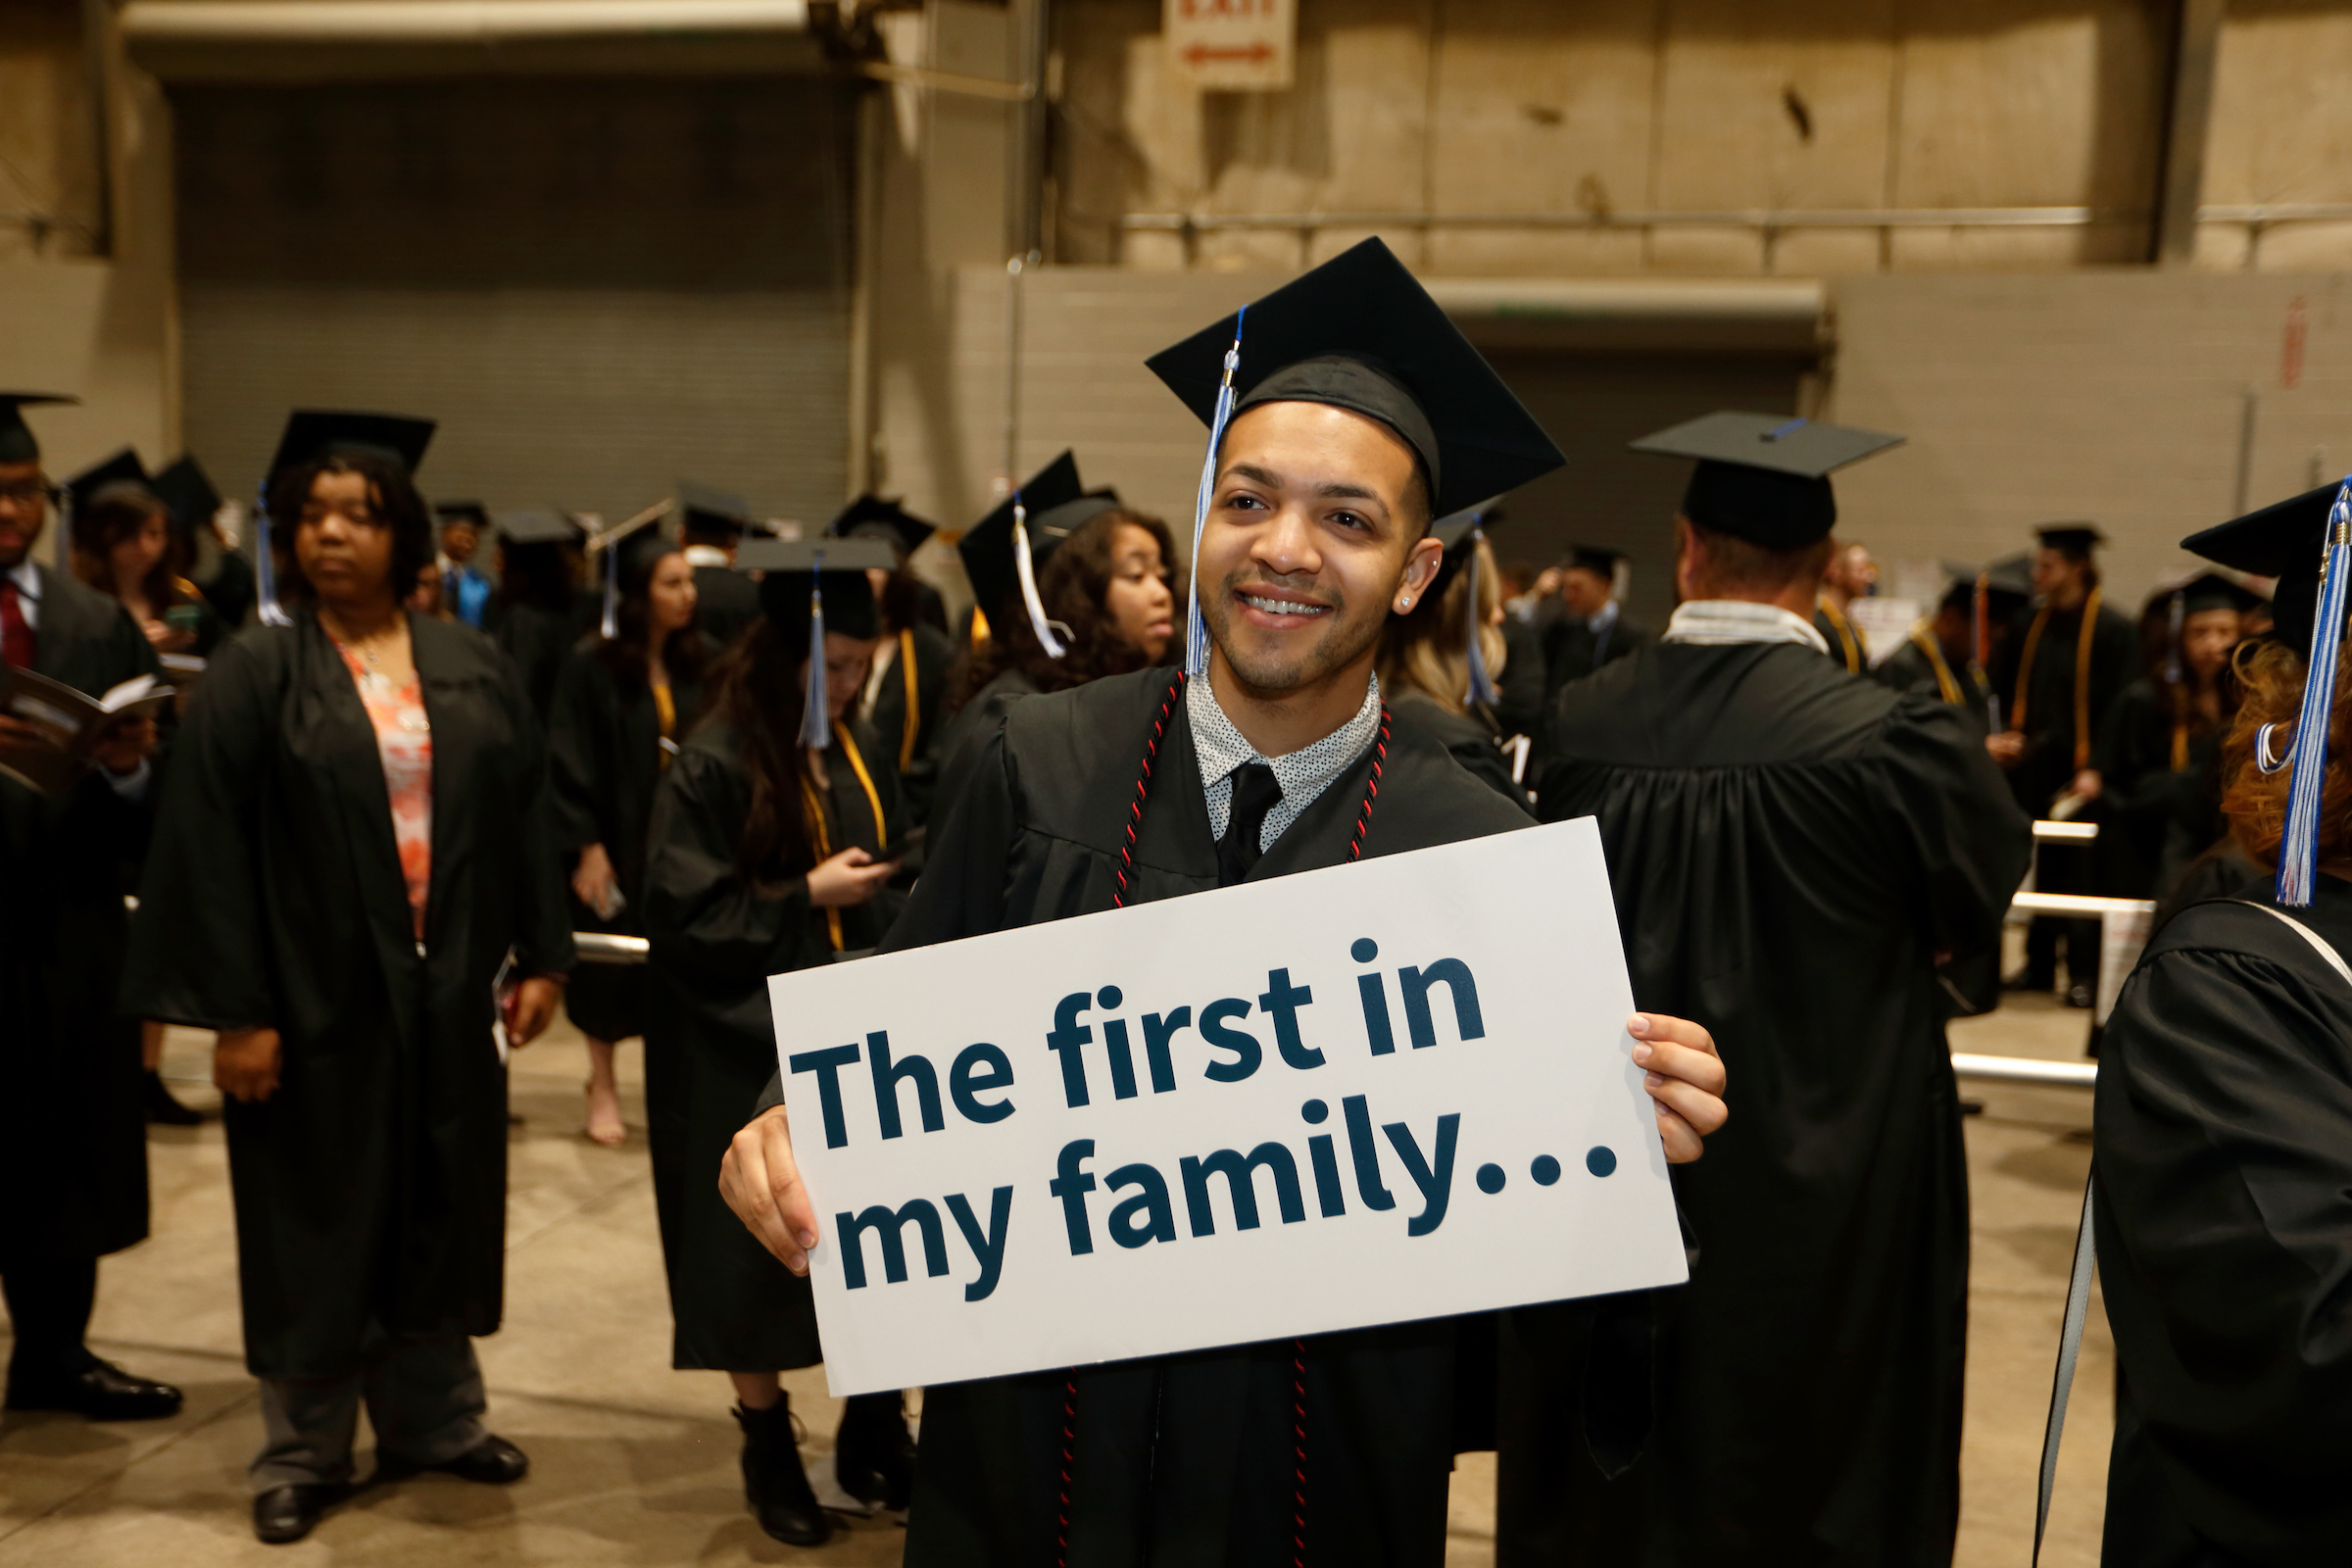 a person at their graduation holding a sign that says 'the first in my family...'